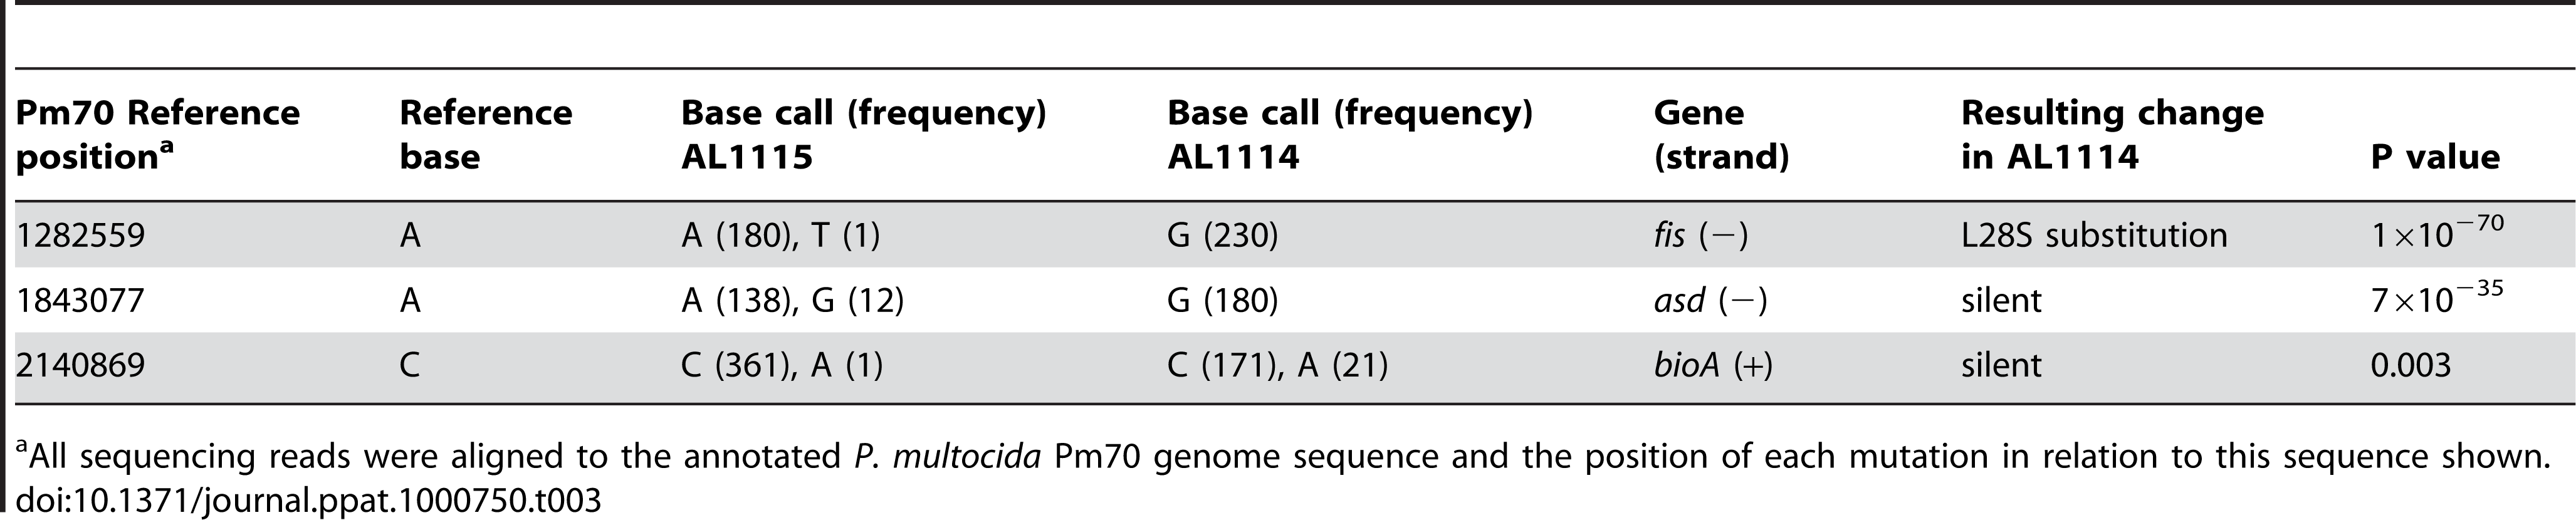 Sequence differences identified by whole-genome Illumina short read sequencing between the acapsular strain AL1114 and the paired capsulated strain AL1115.